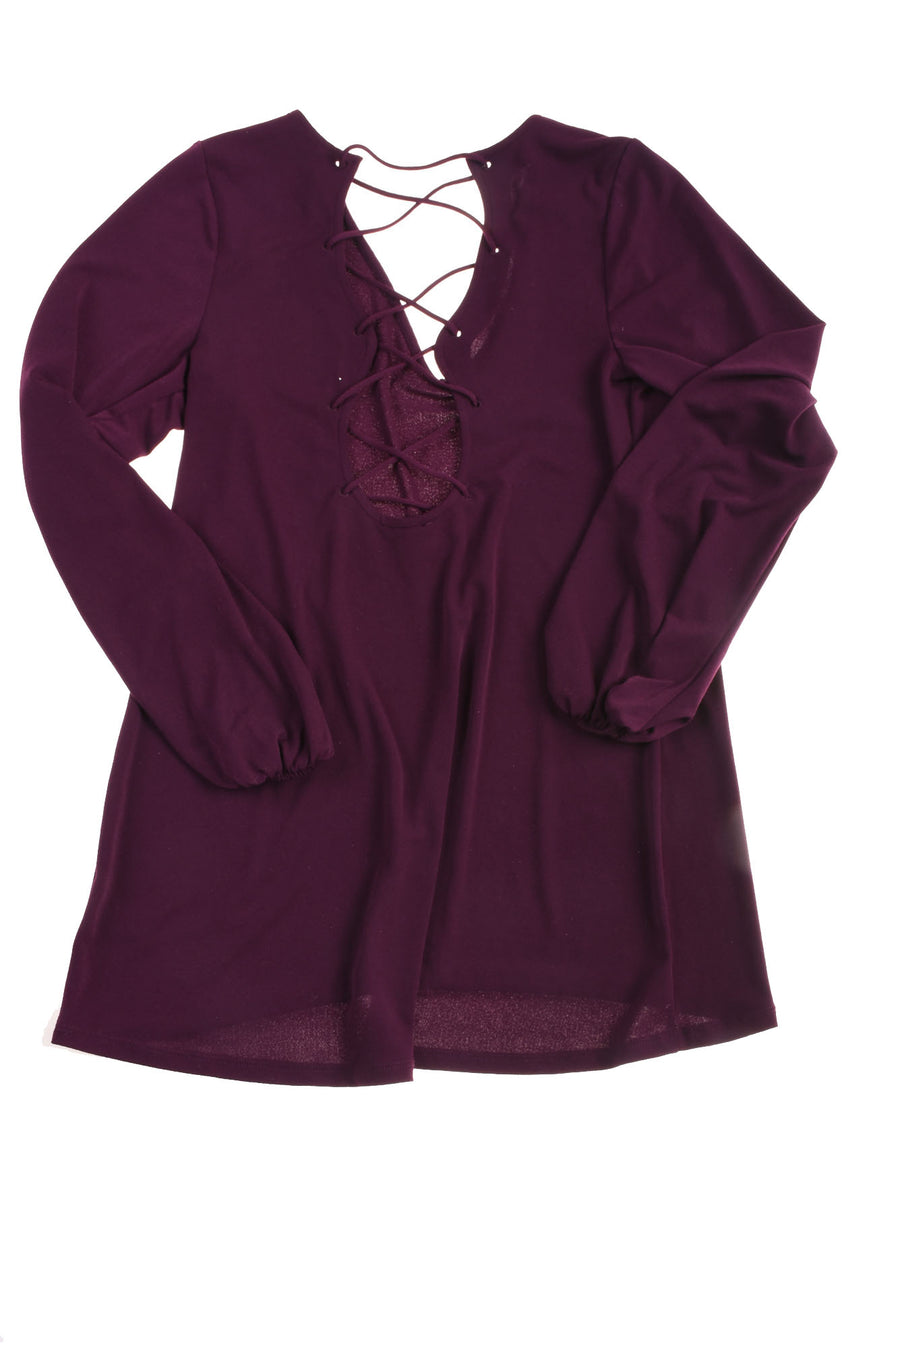 USED Express Women's Top Small Purple